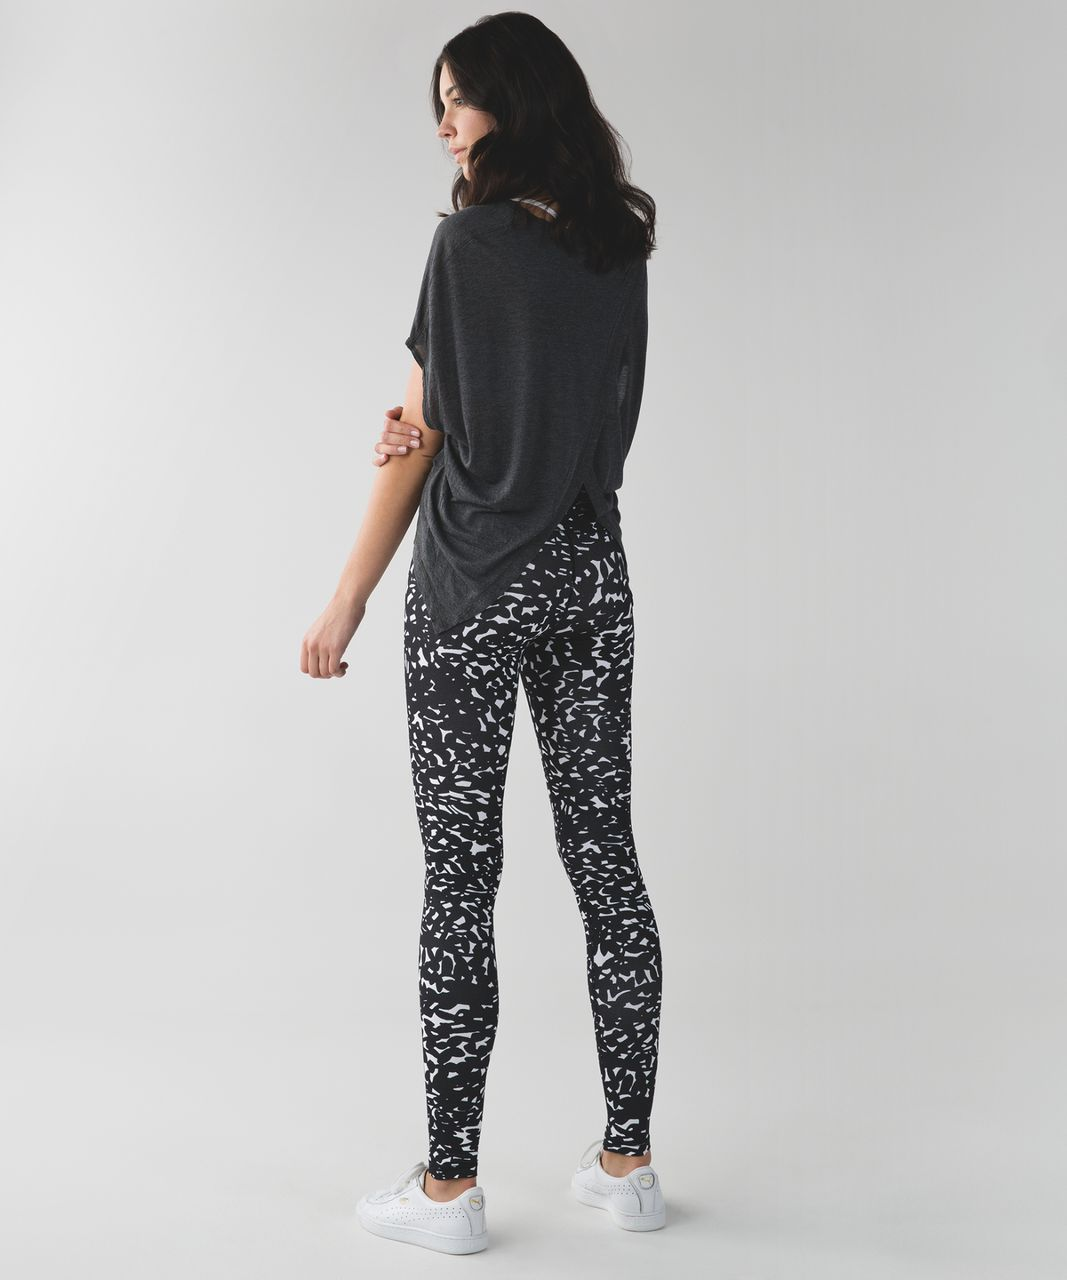 Lululemon Wunder Under Pant (Hi-Rise) - Shadow Wrap White Black